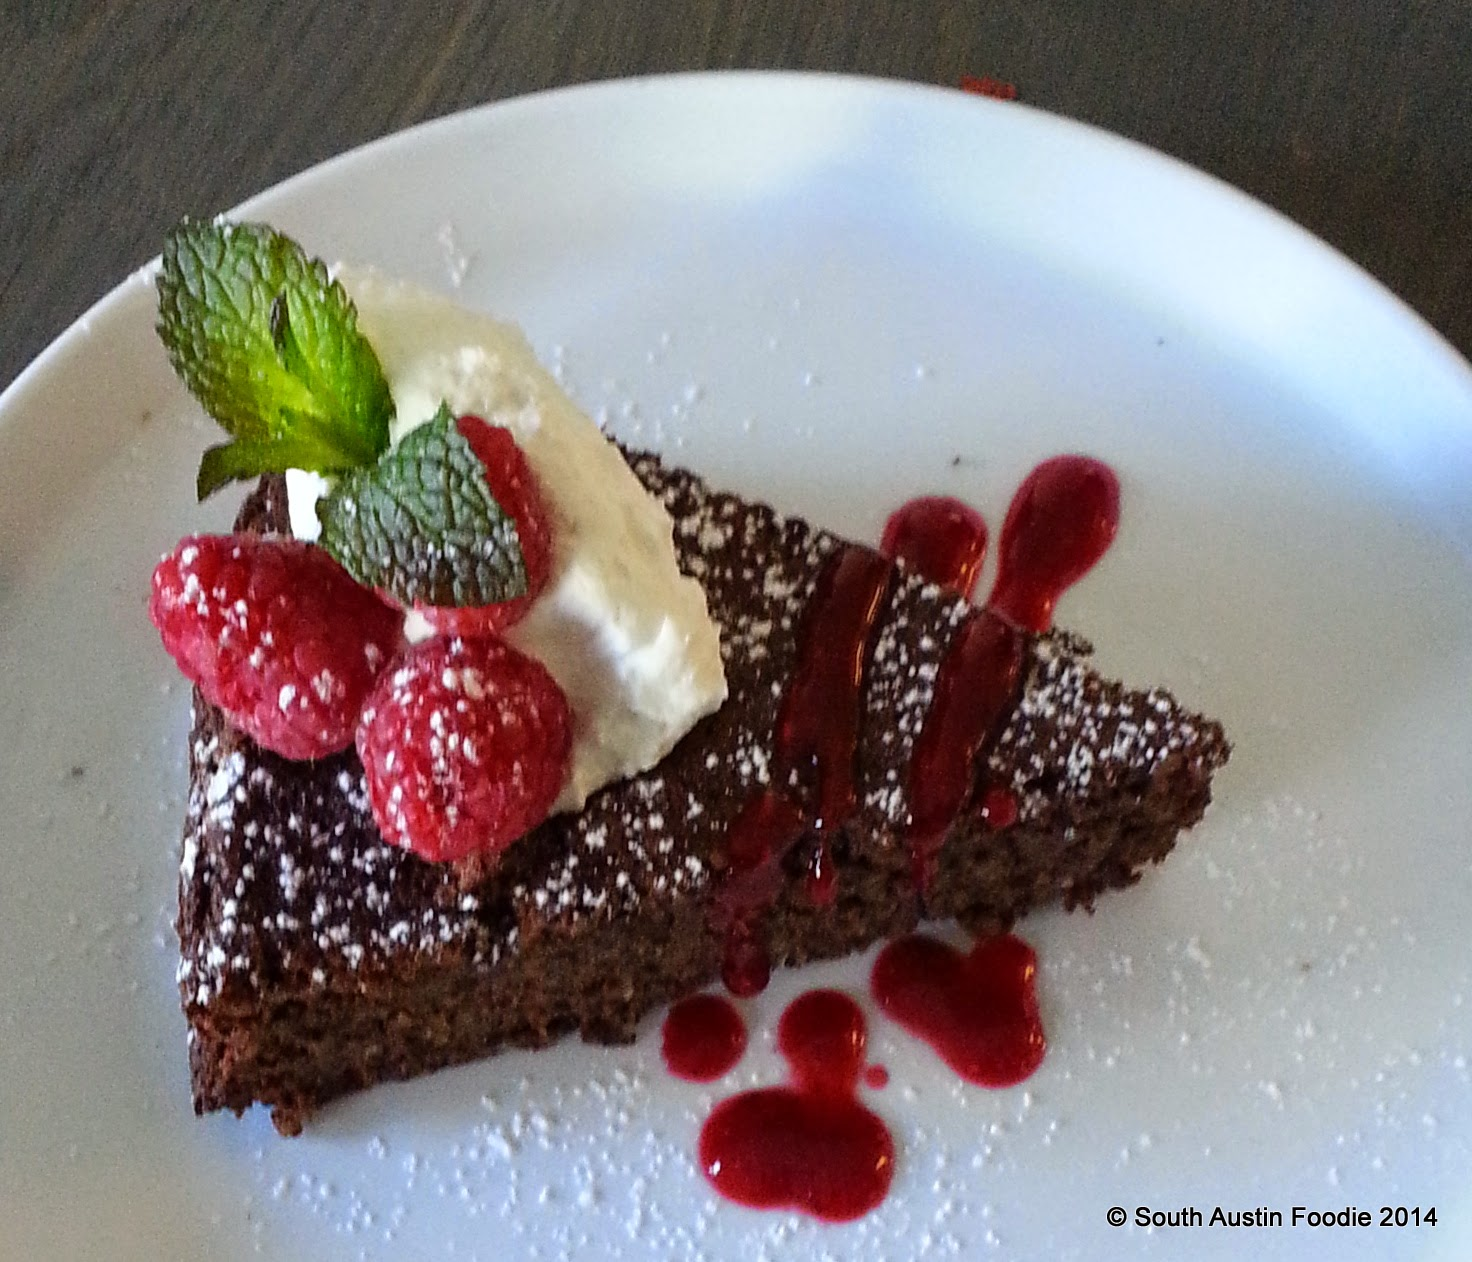 Mary's Pizza -- flourless chocolate torte